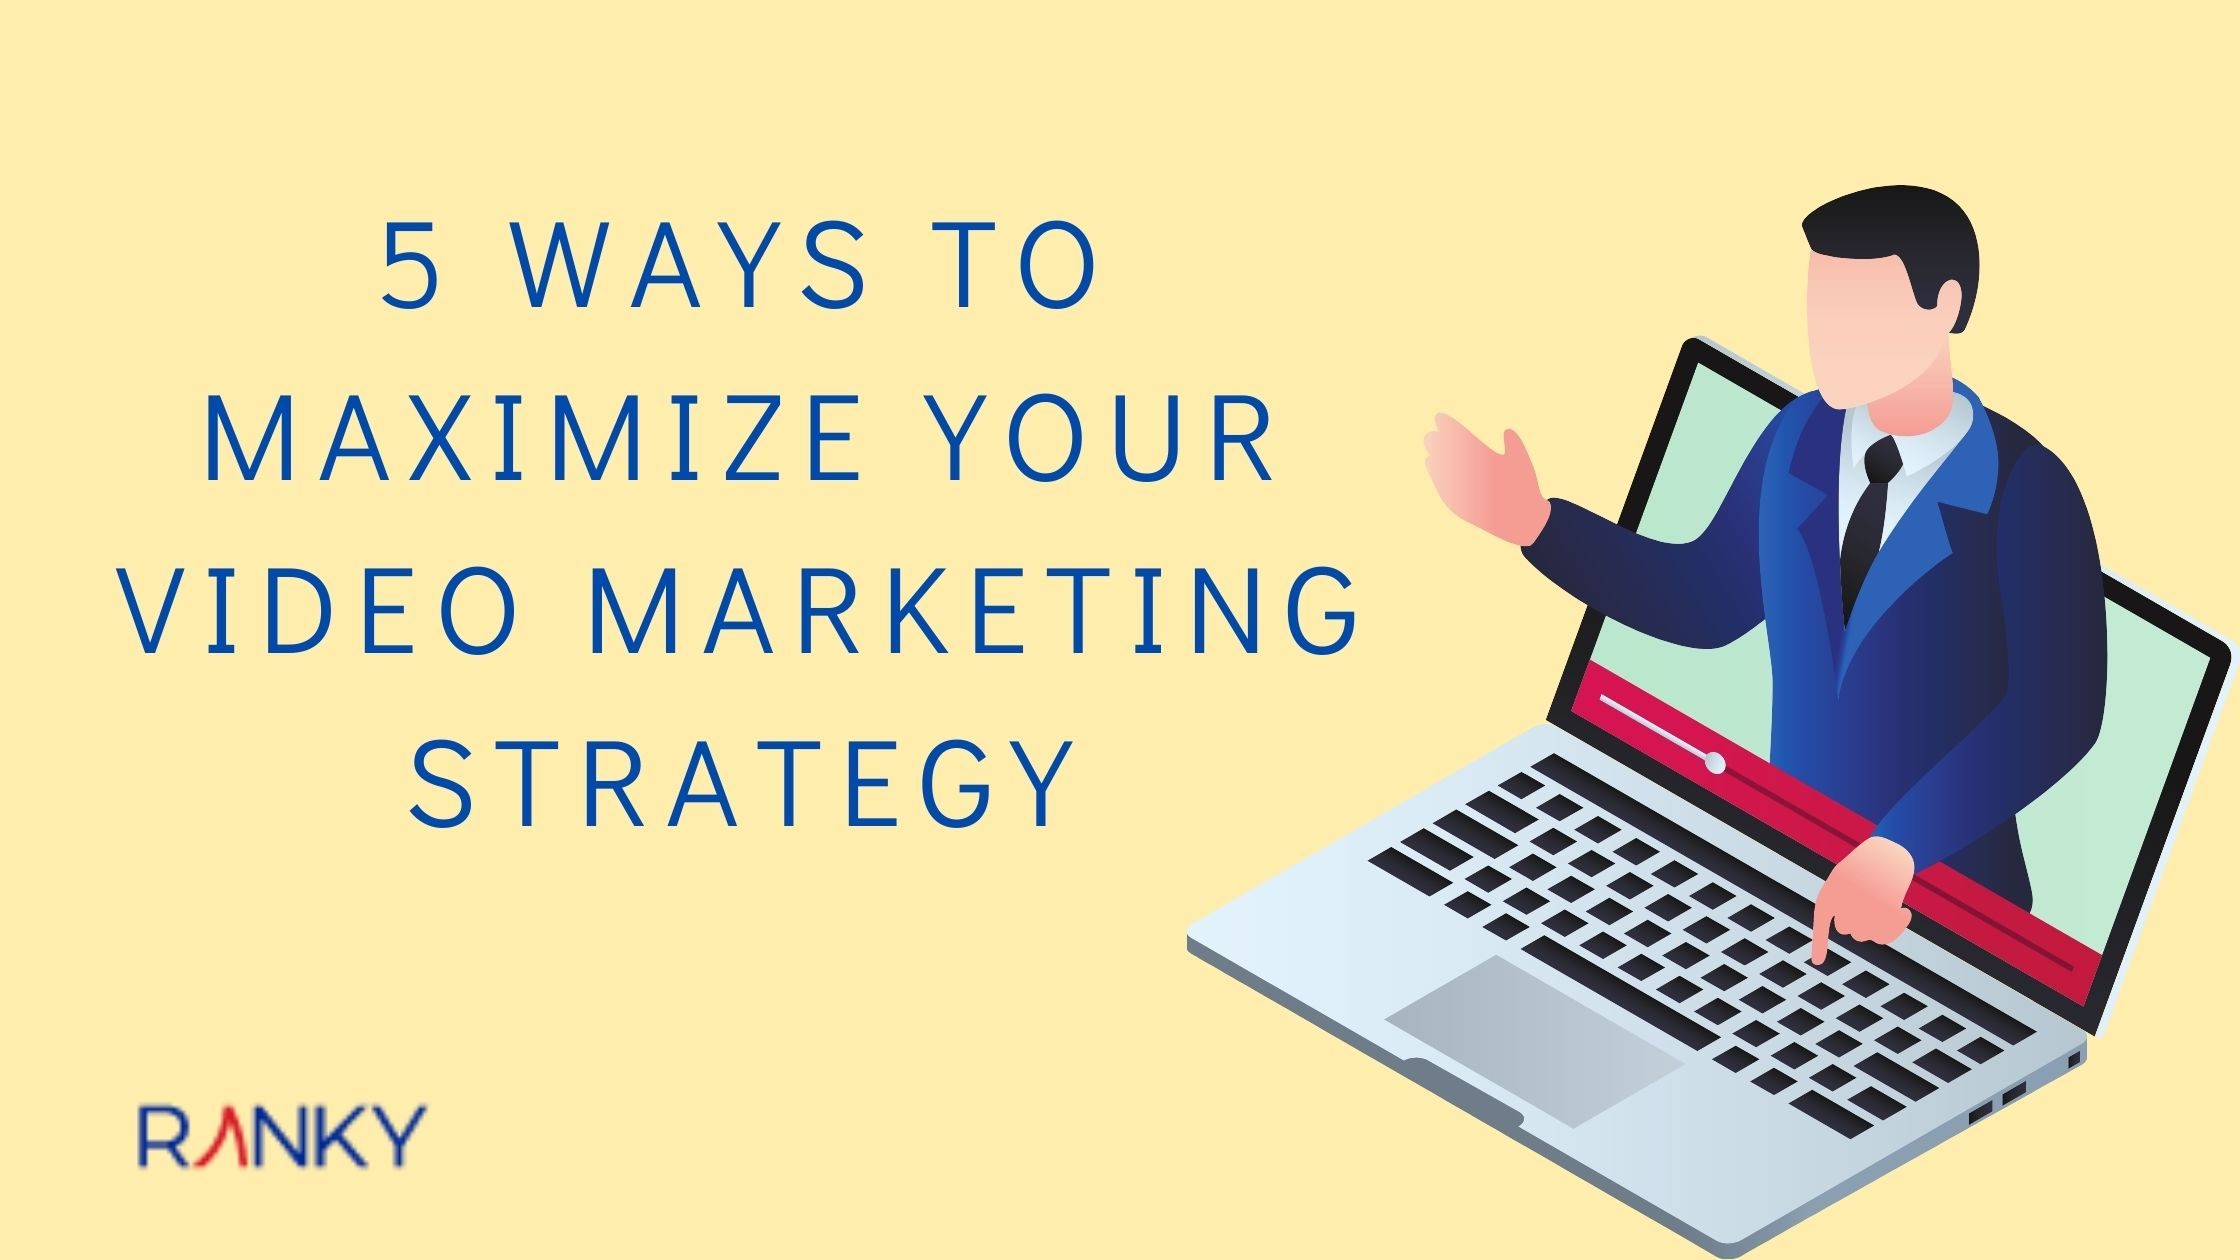 5 Ways to Maximize Your Video Marketing Strategy